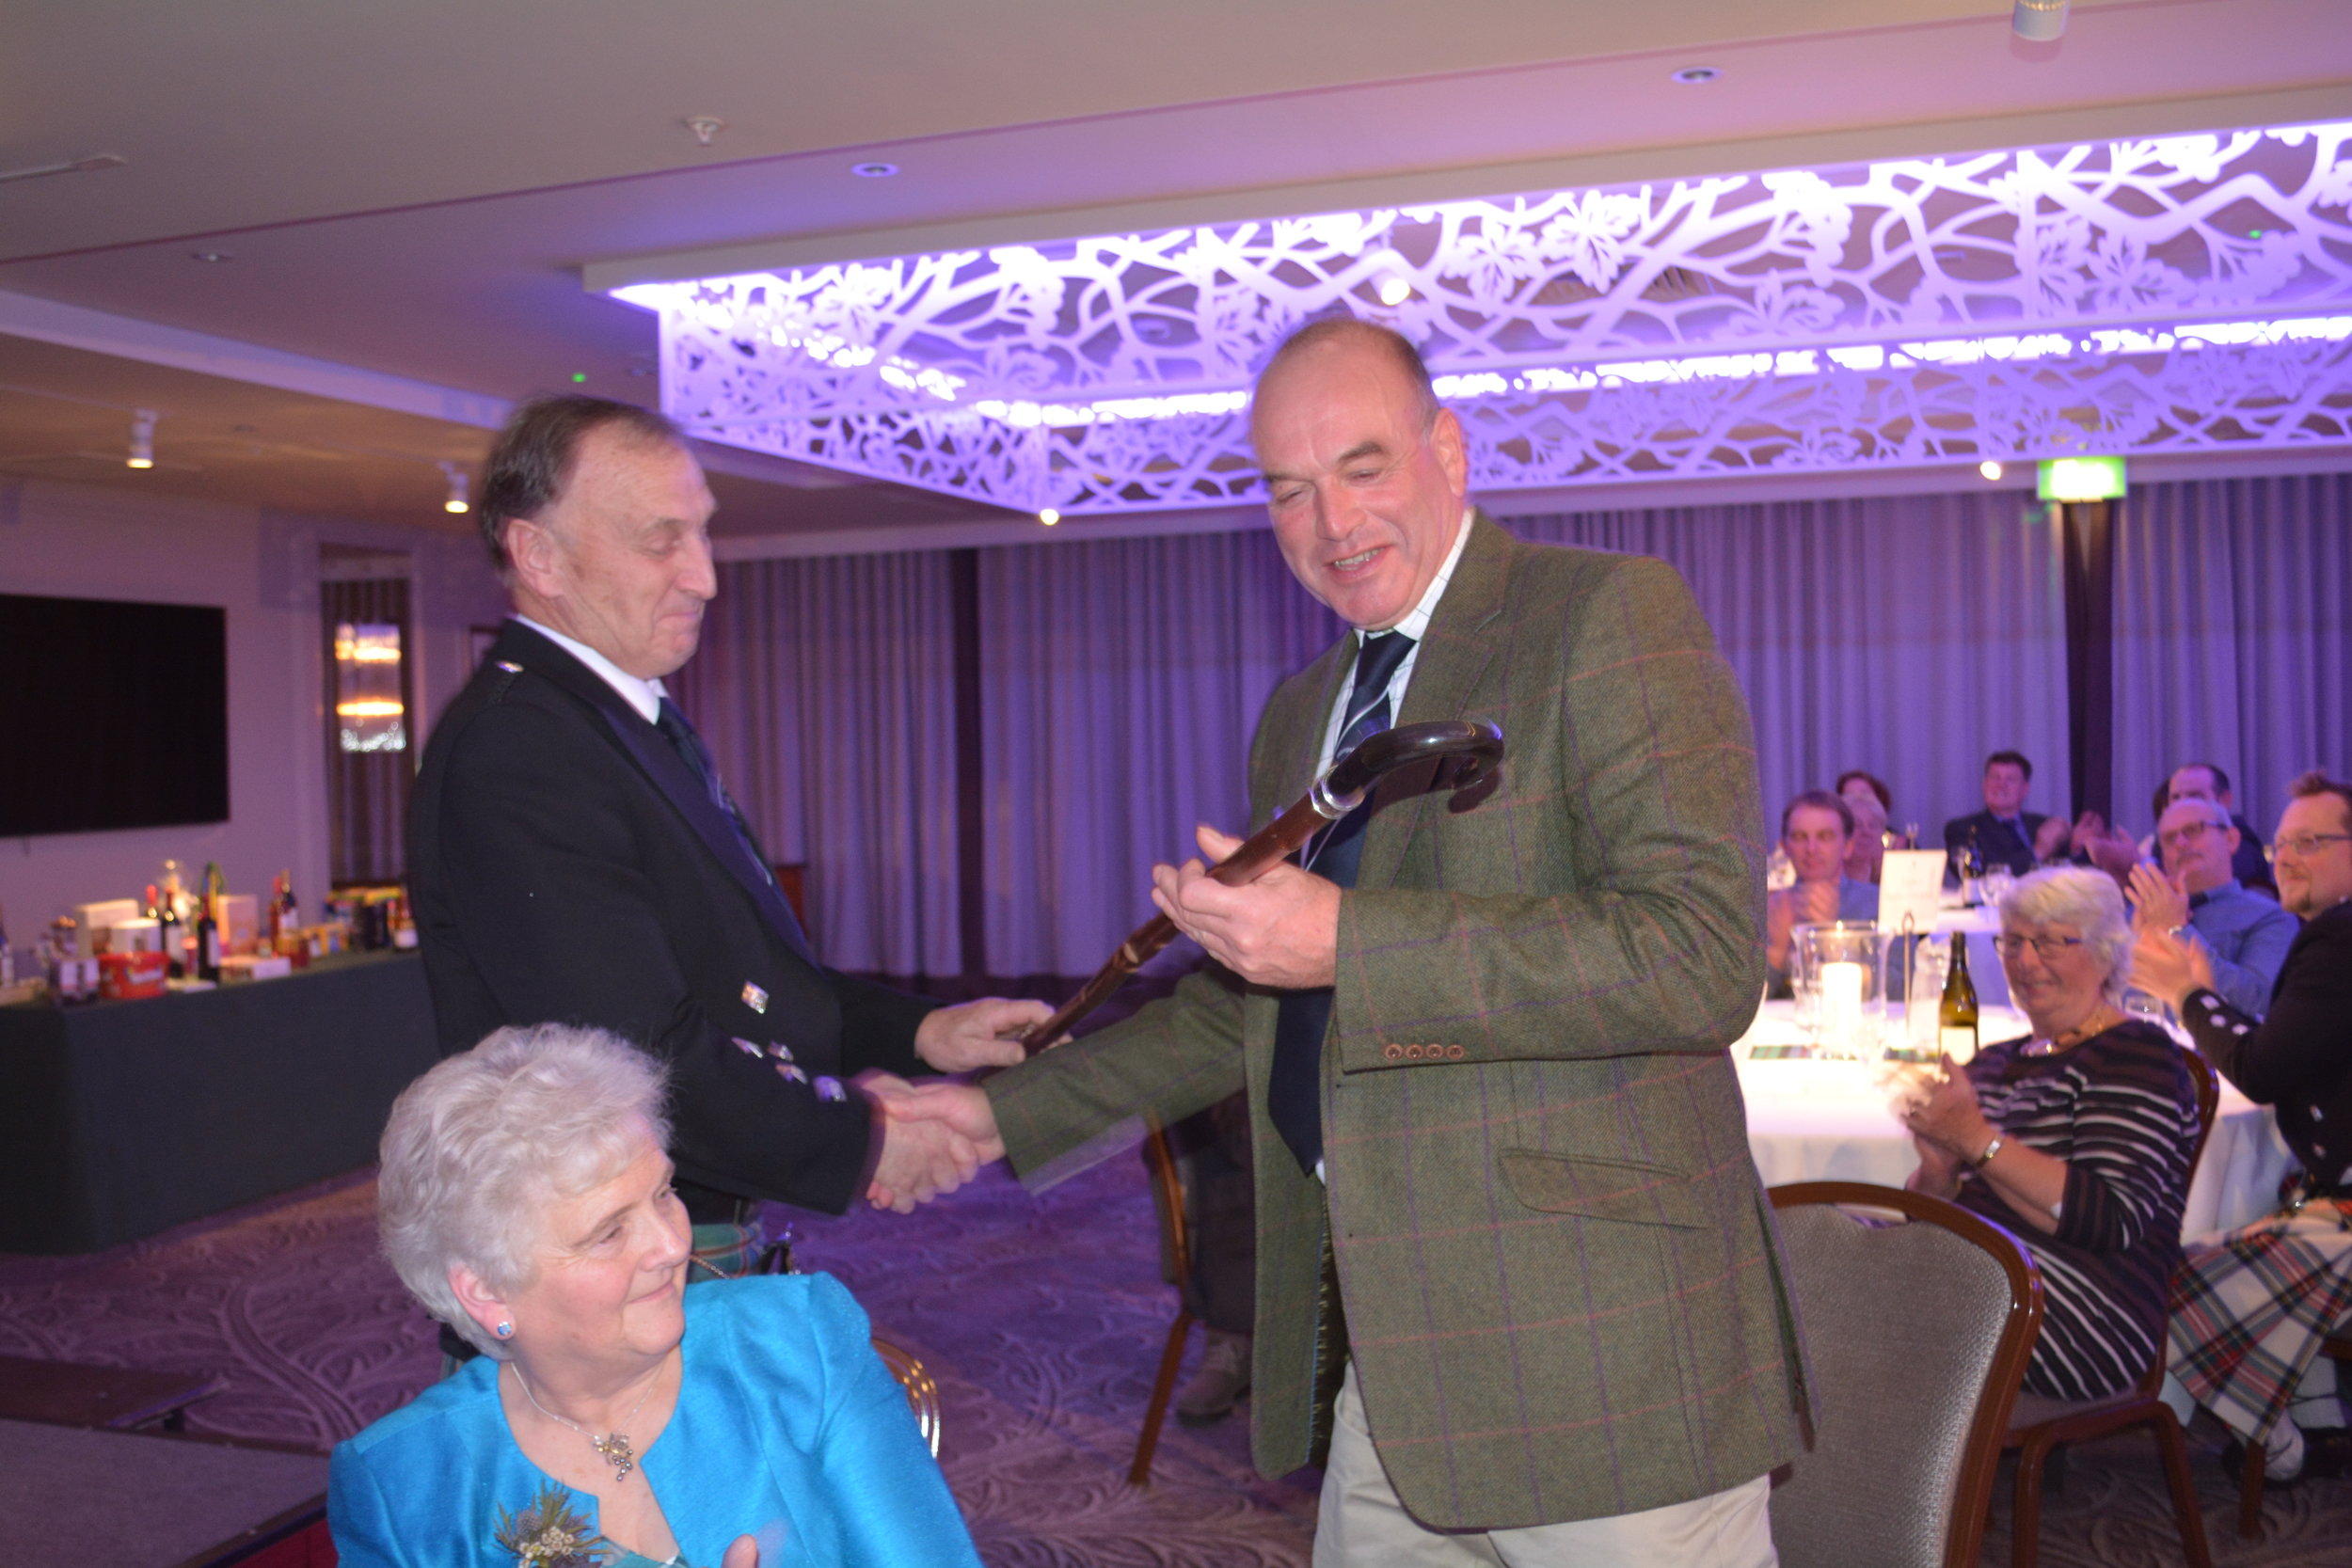 A presentation to David Middleditch from the Scottish Club - marking the first National AGM to be held in Scotland